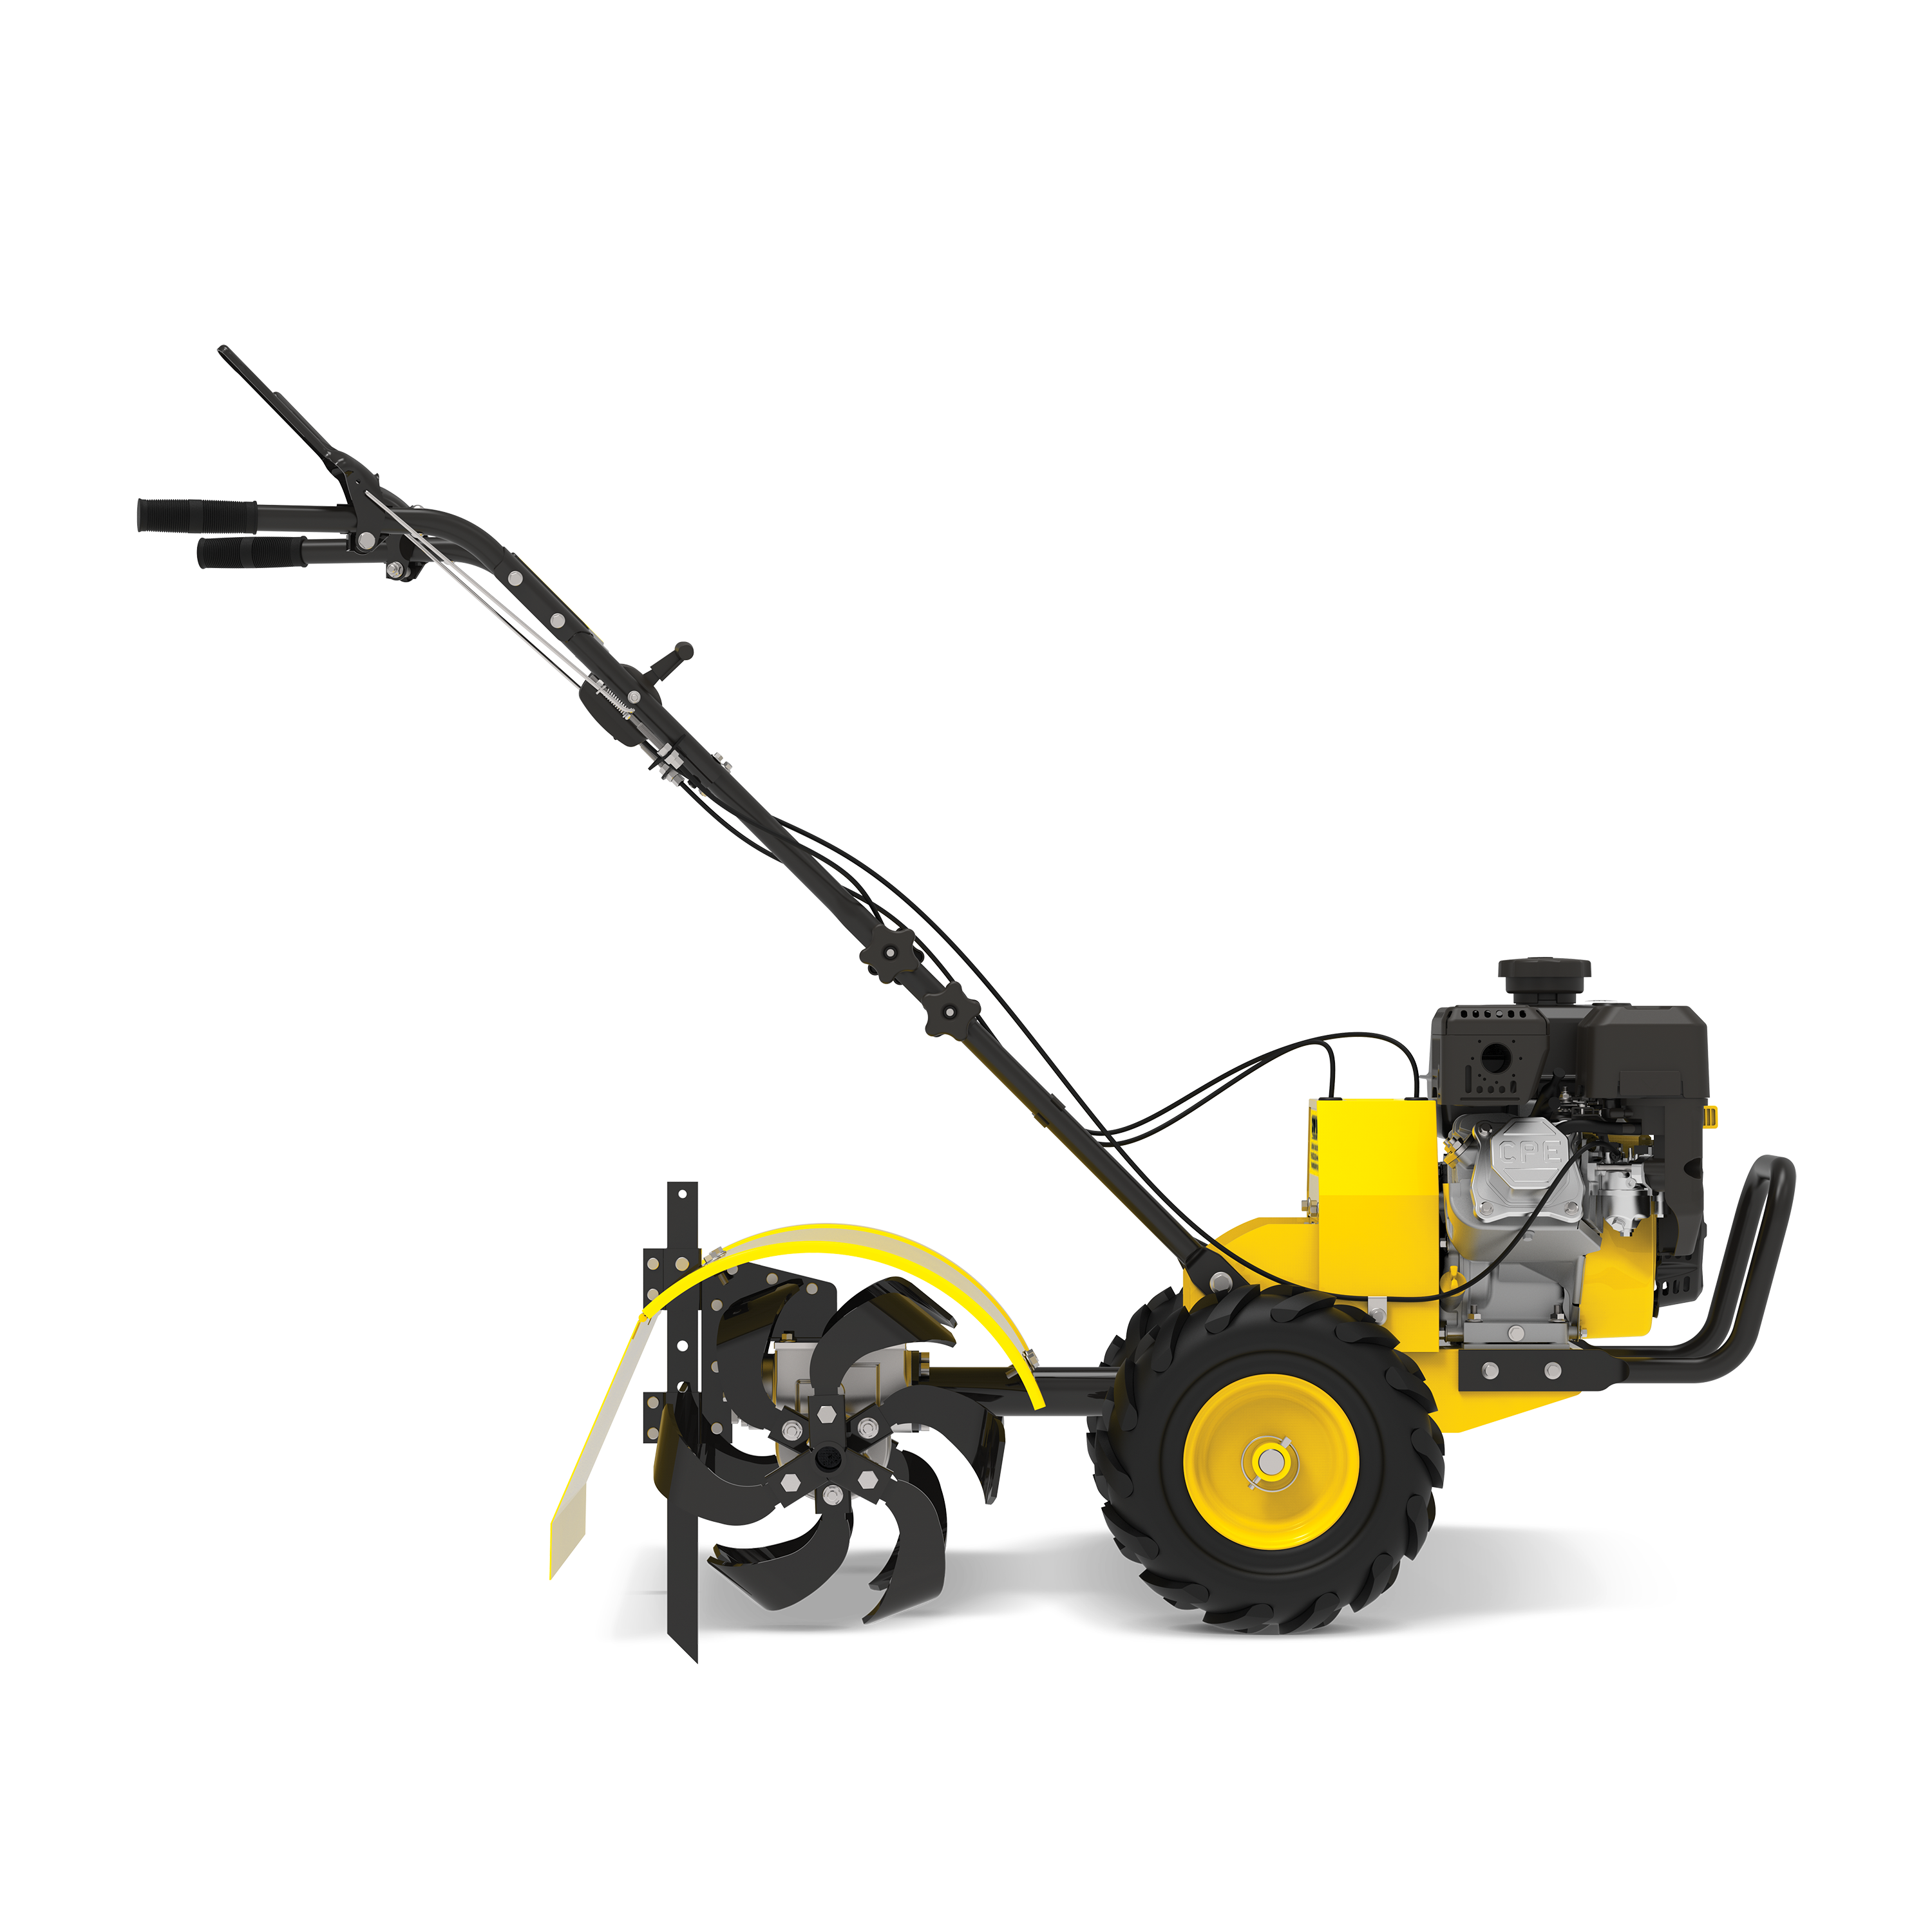 Champion Power Equipment 19-Inch Counter Rotating Rear Tine Tiller with Self-Propelled Agricultural Tires